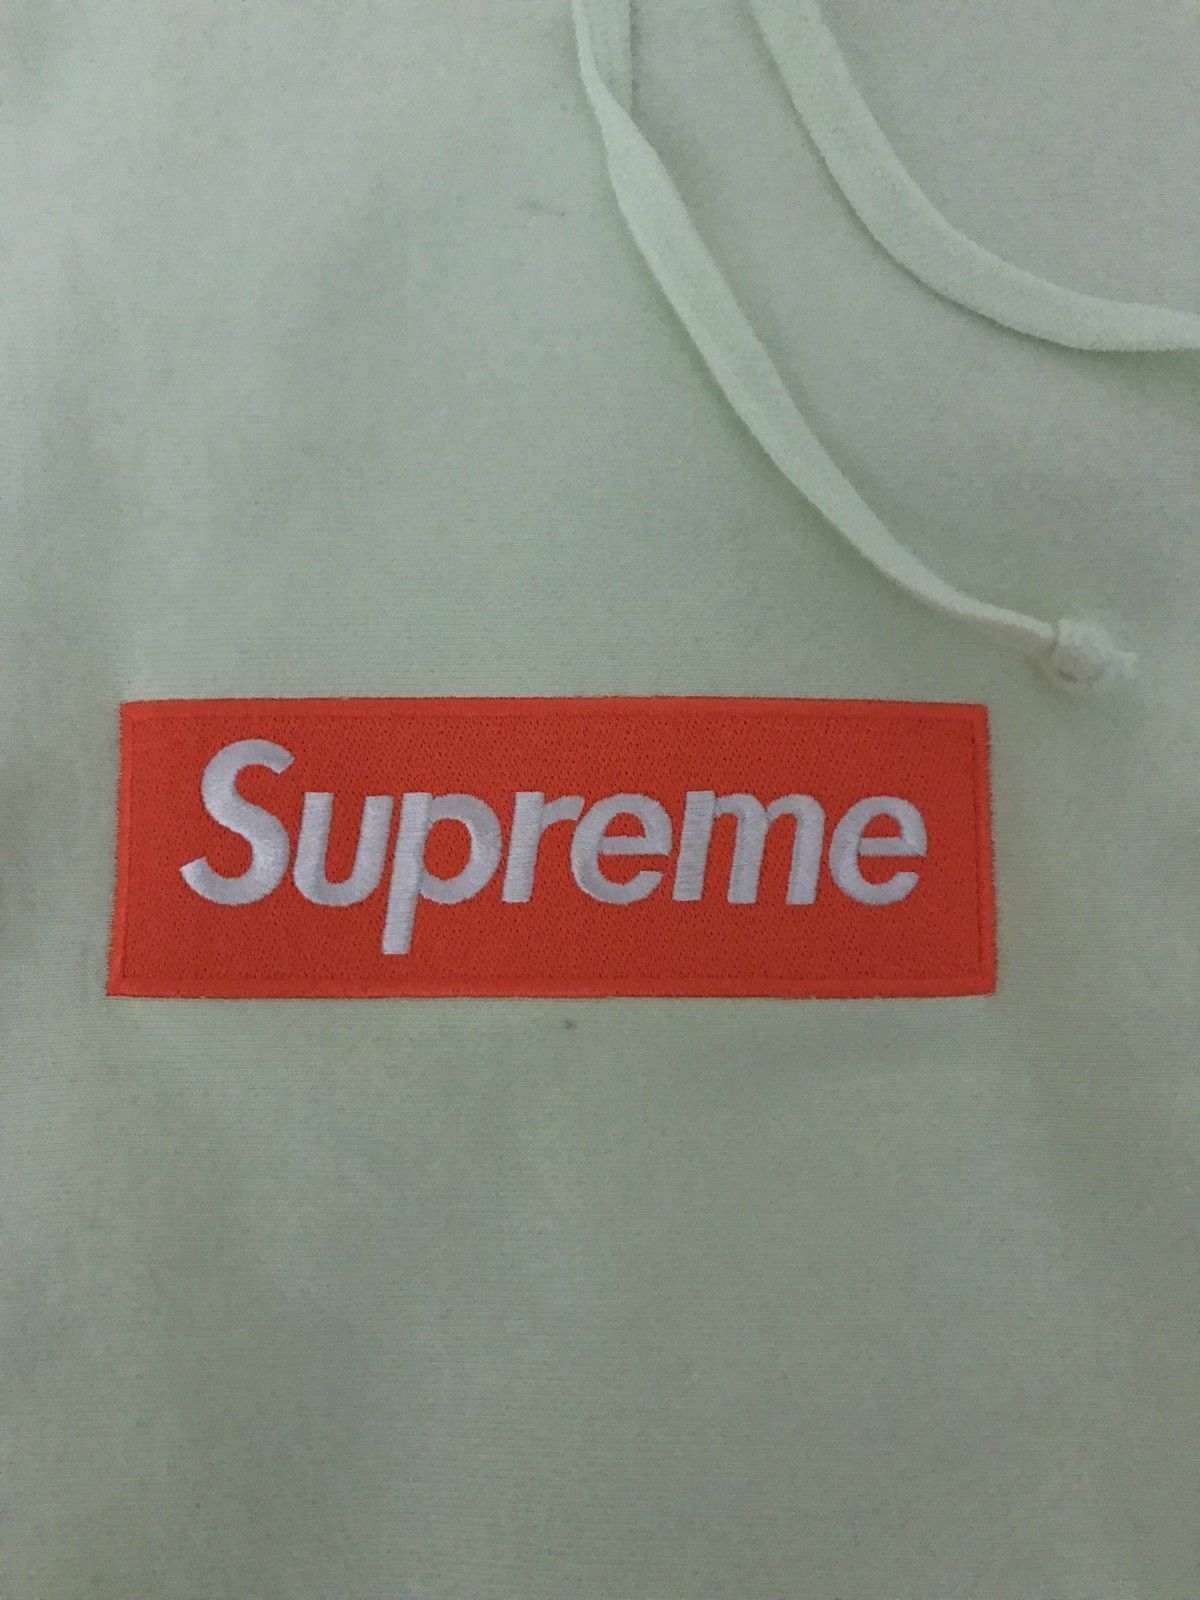 ccc63adf2 Details about Supreme Small Box Logo Zip Up Sweatshirt Hoodie ...